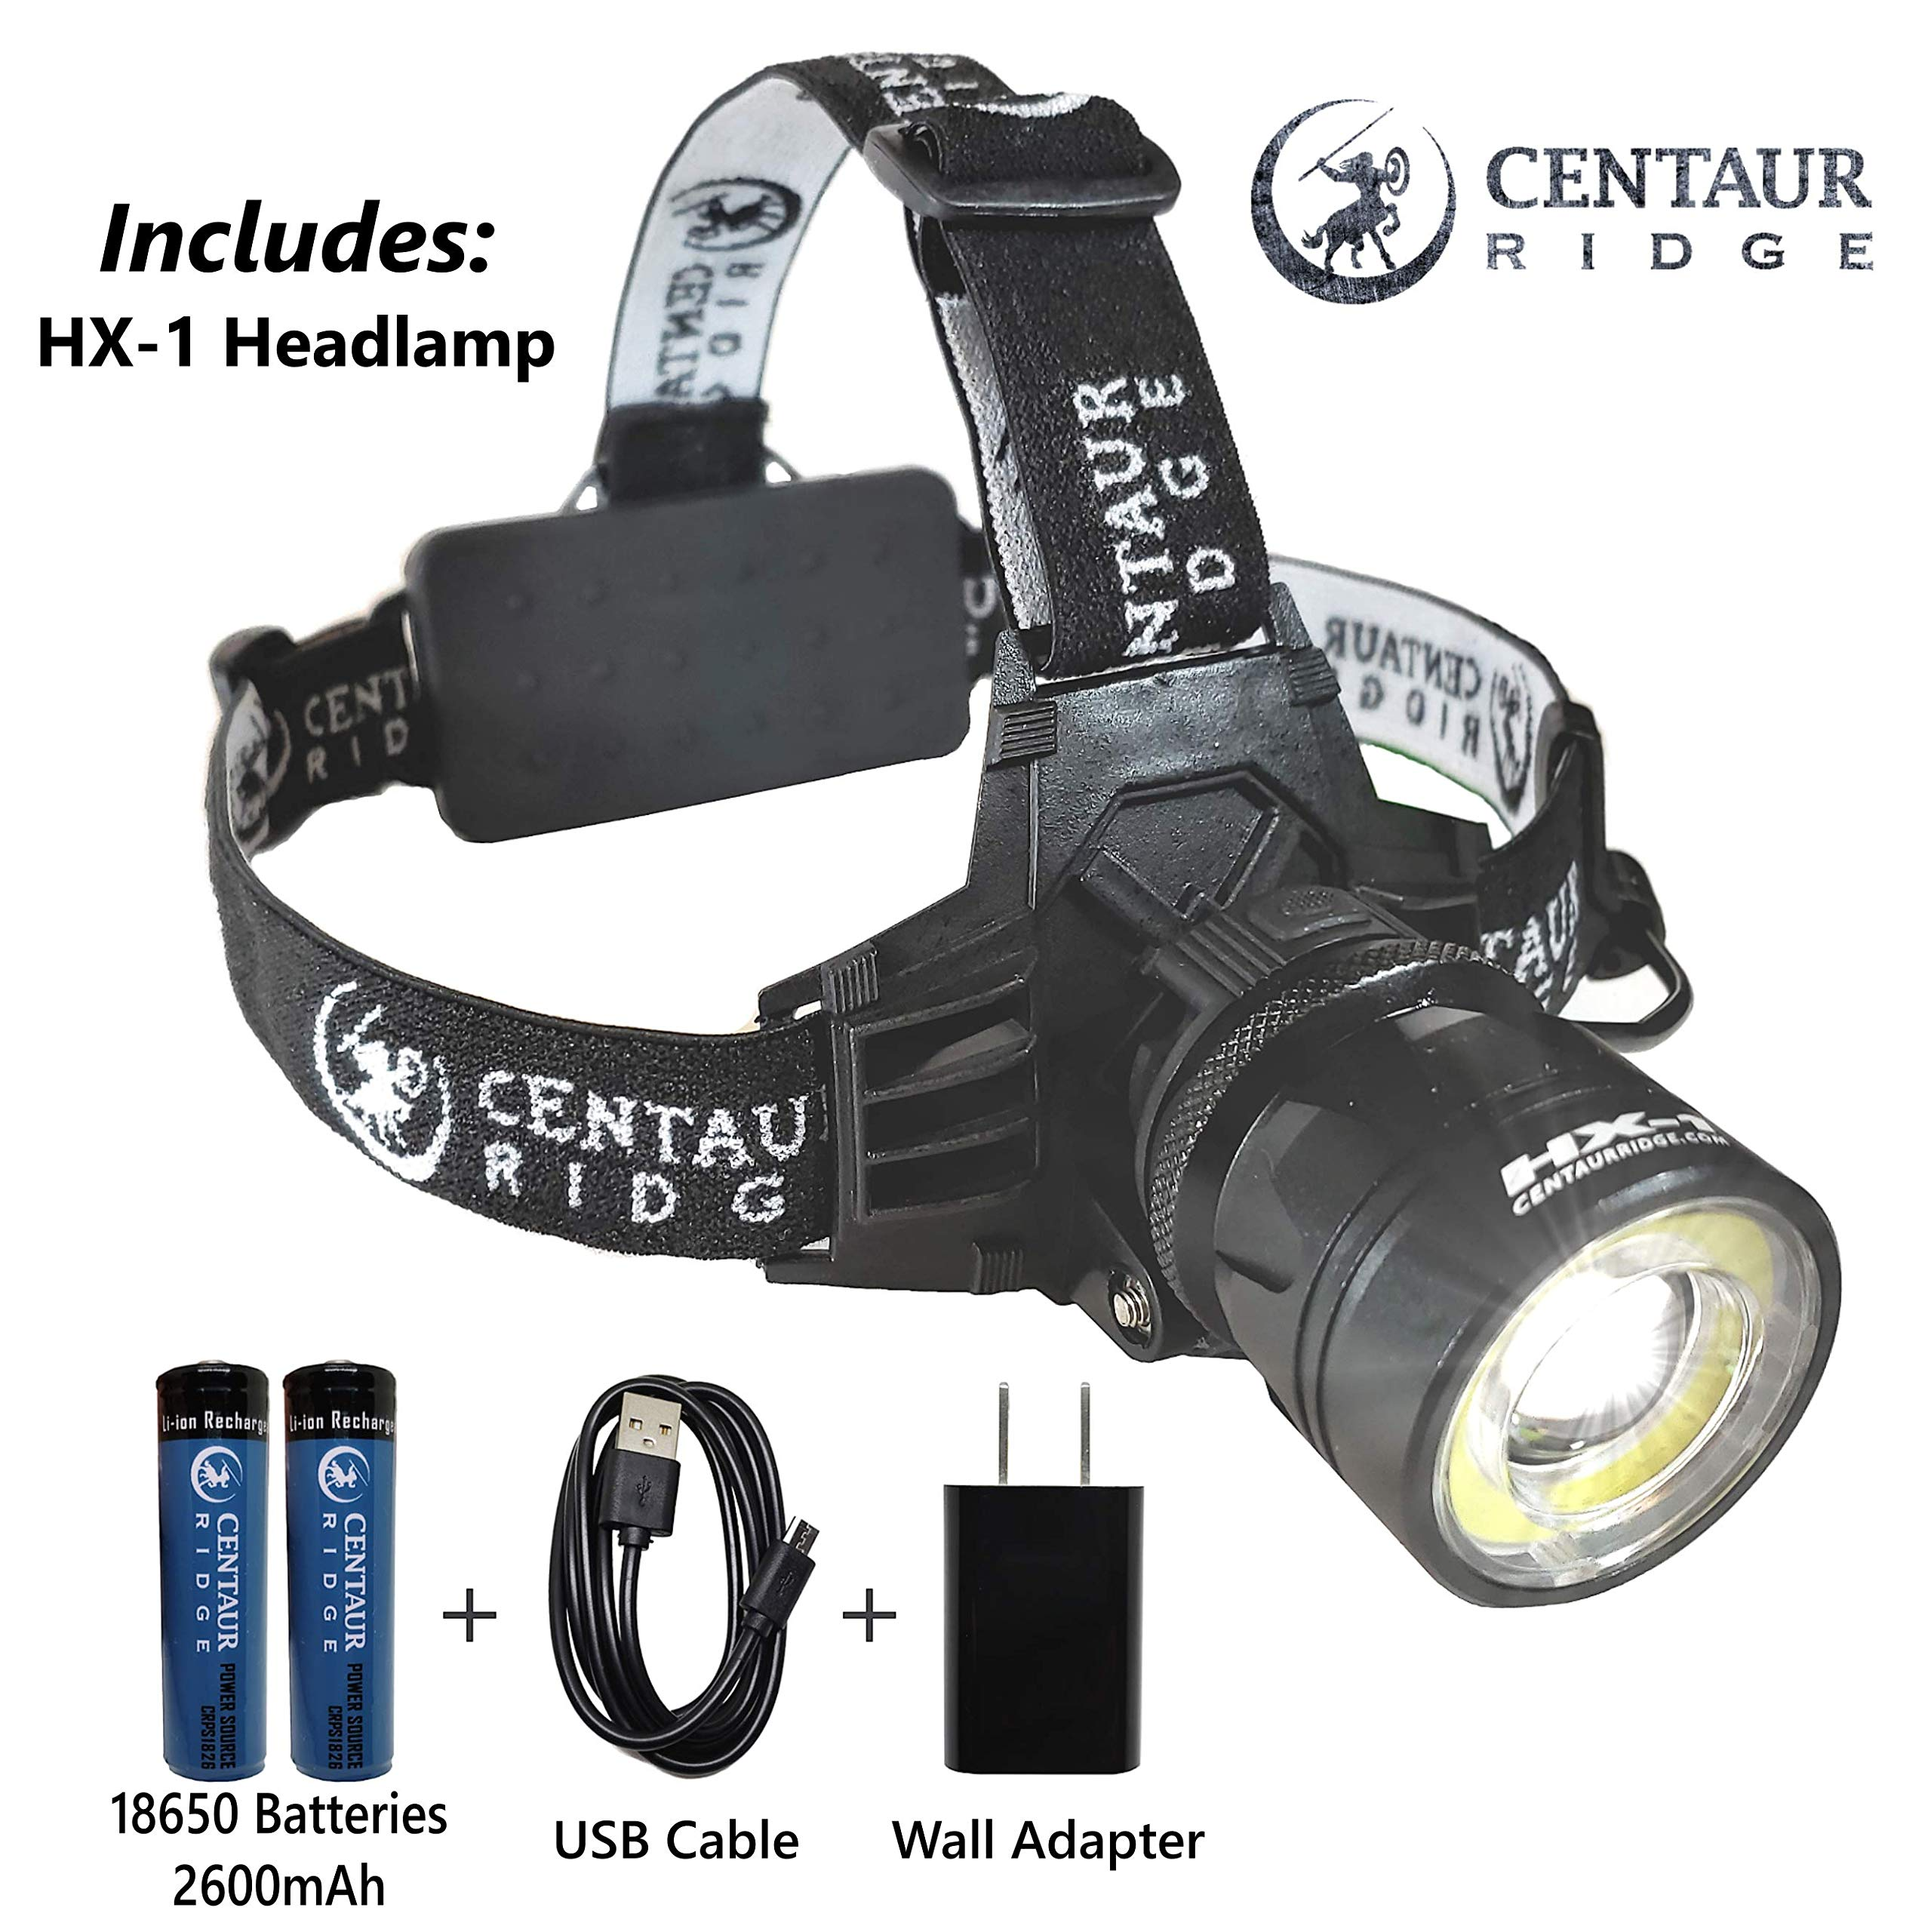 Centaur Ridge Headlamp - Xtreme Bright, 1000 Lumen CREE LED, Zoomable, USB Rechargeable | Best Flashlight for Camping, Hiking, Running, Work by Centaur Ridge (Image #3)